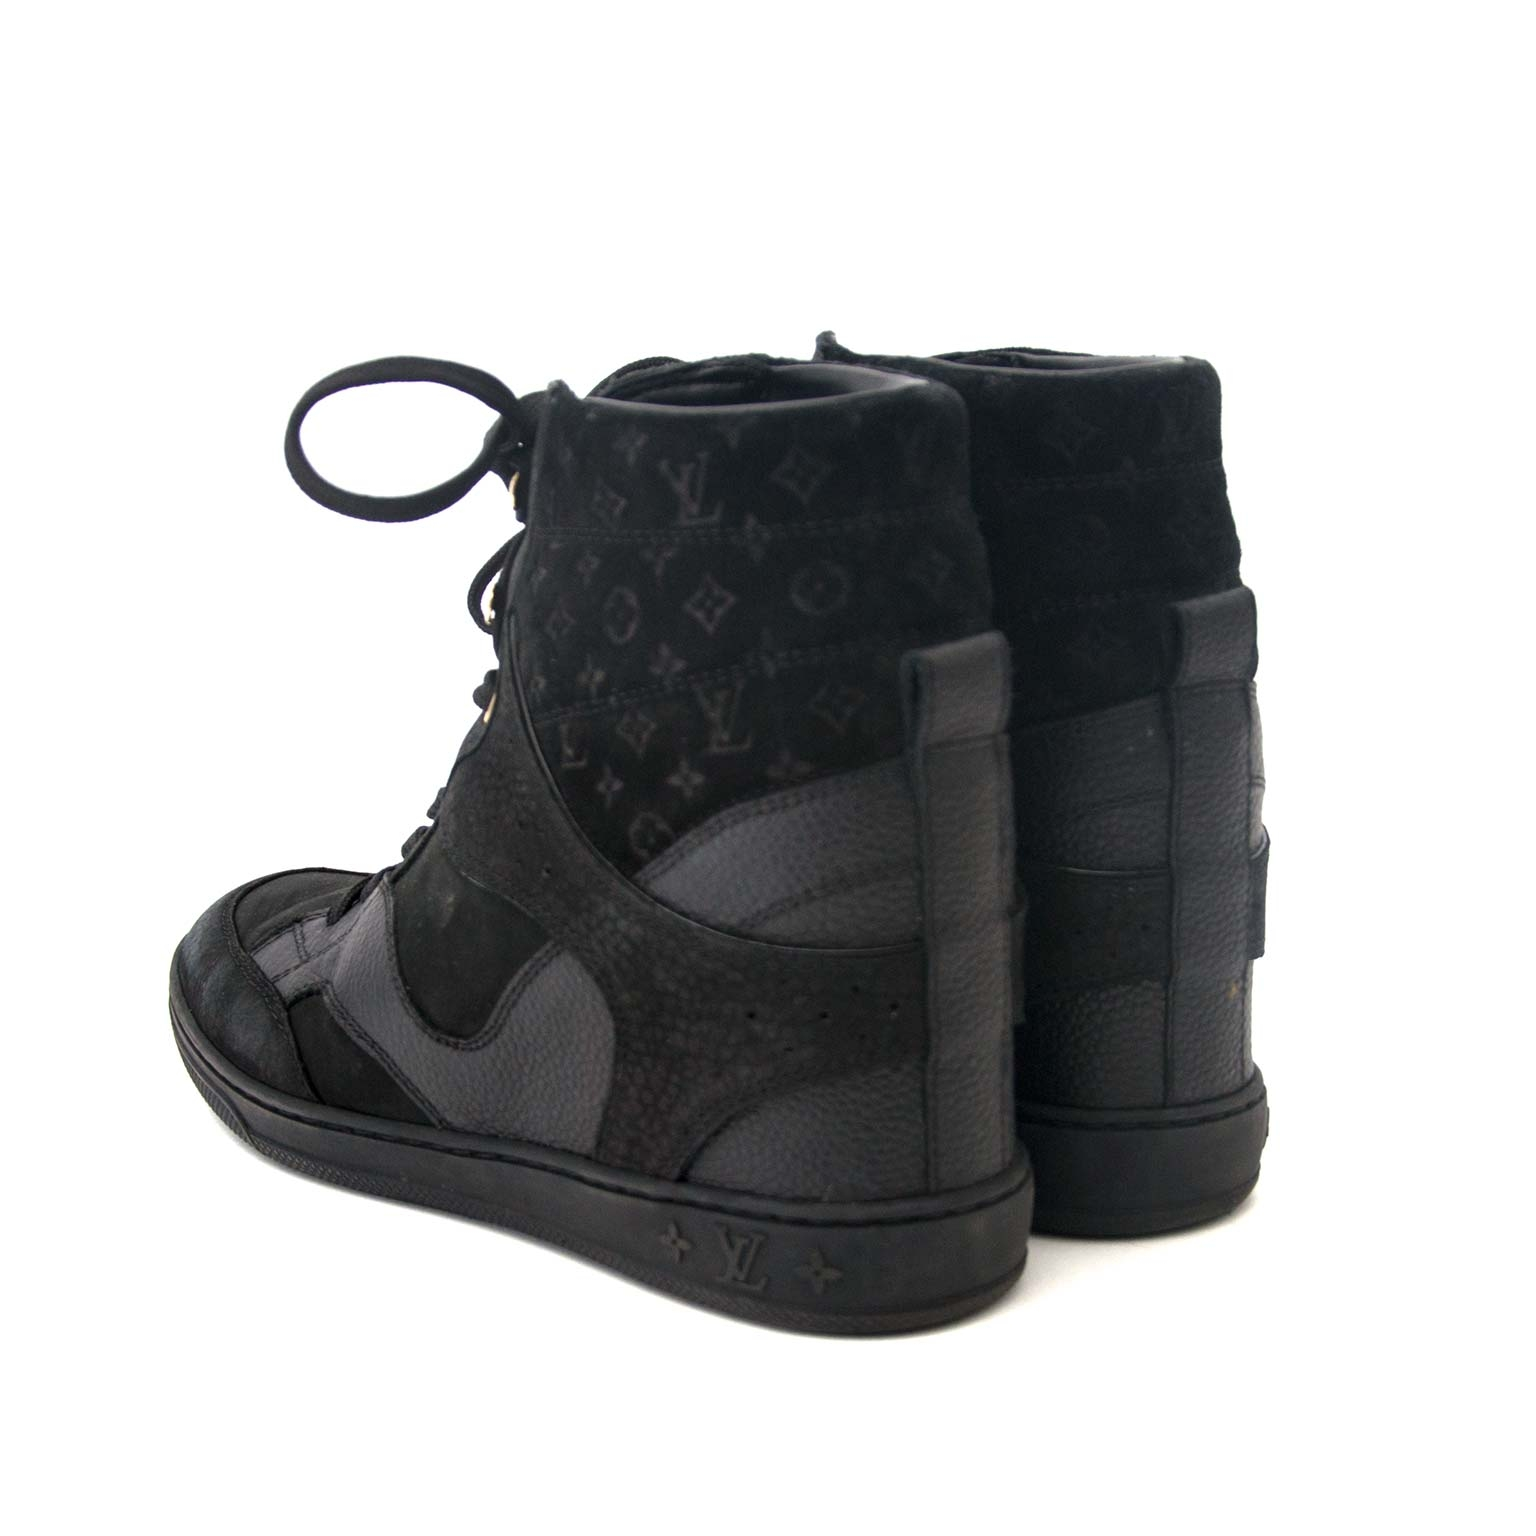 Louis Vuitton Black Cliff Top Wedge Sneakers - Size 36,5 Buy authentic designer Louis Vuitton  secondhand shoes at Labellov at the best price. Safe and secure shopping. Koop tweedehands authentieke Louis Vuitton schoenen bij designer webwinkel labellov.